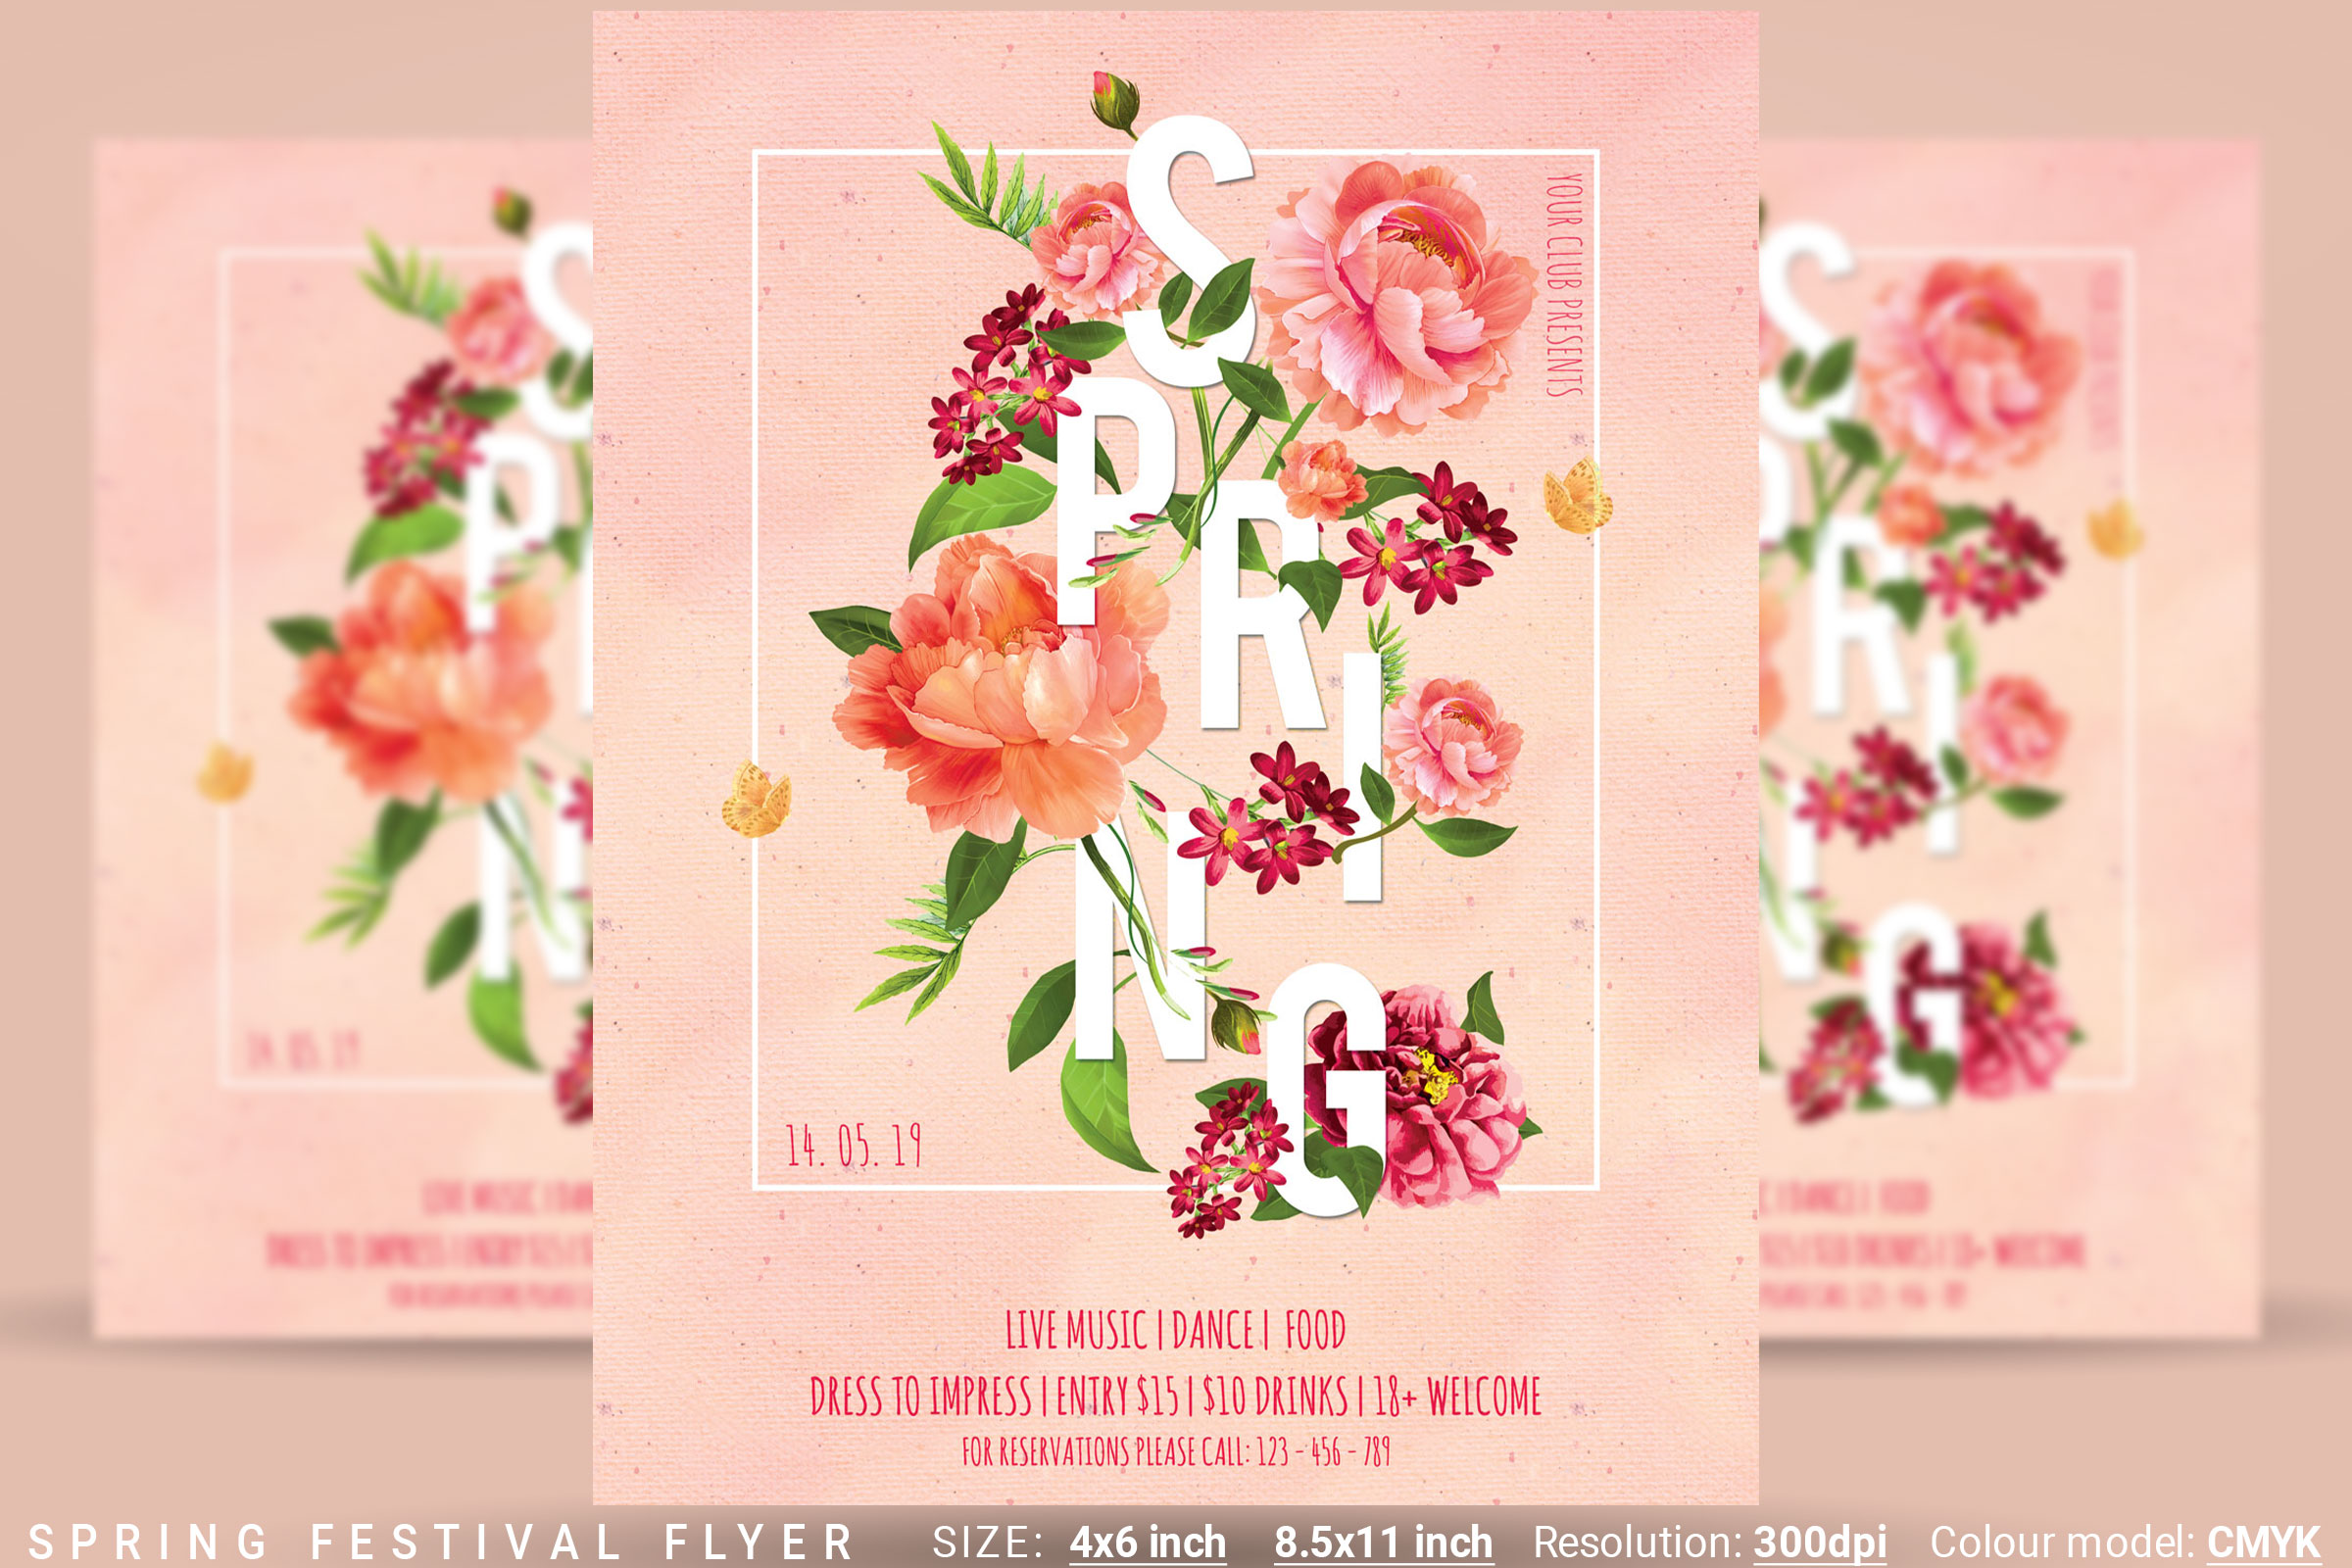 Spring Festival Party Flyer example image 1